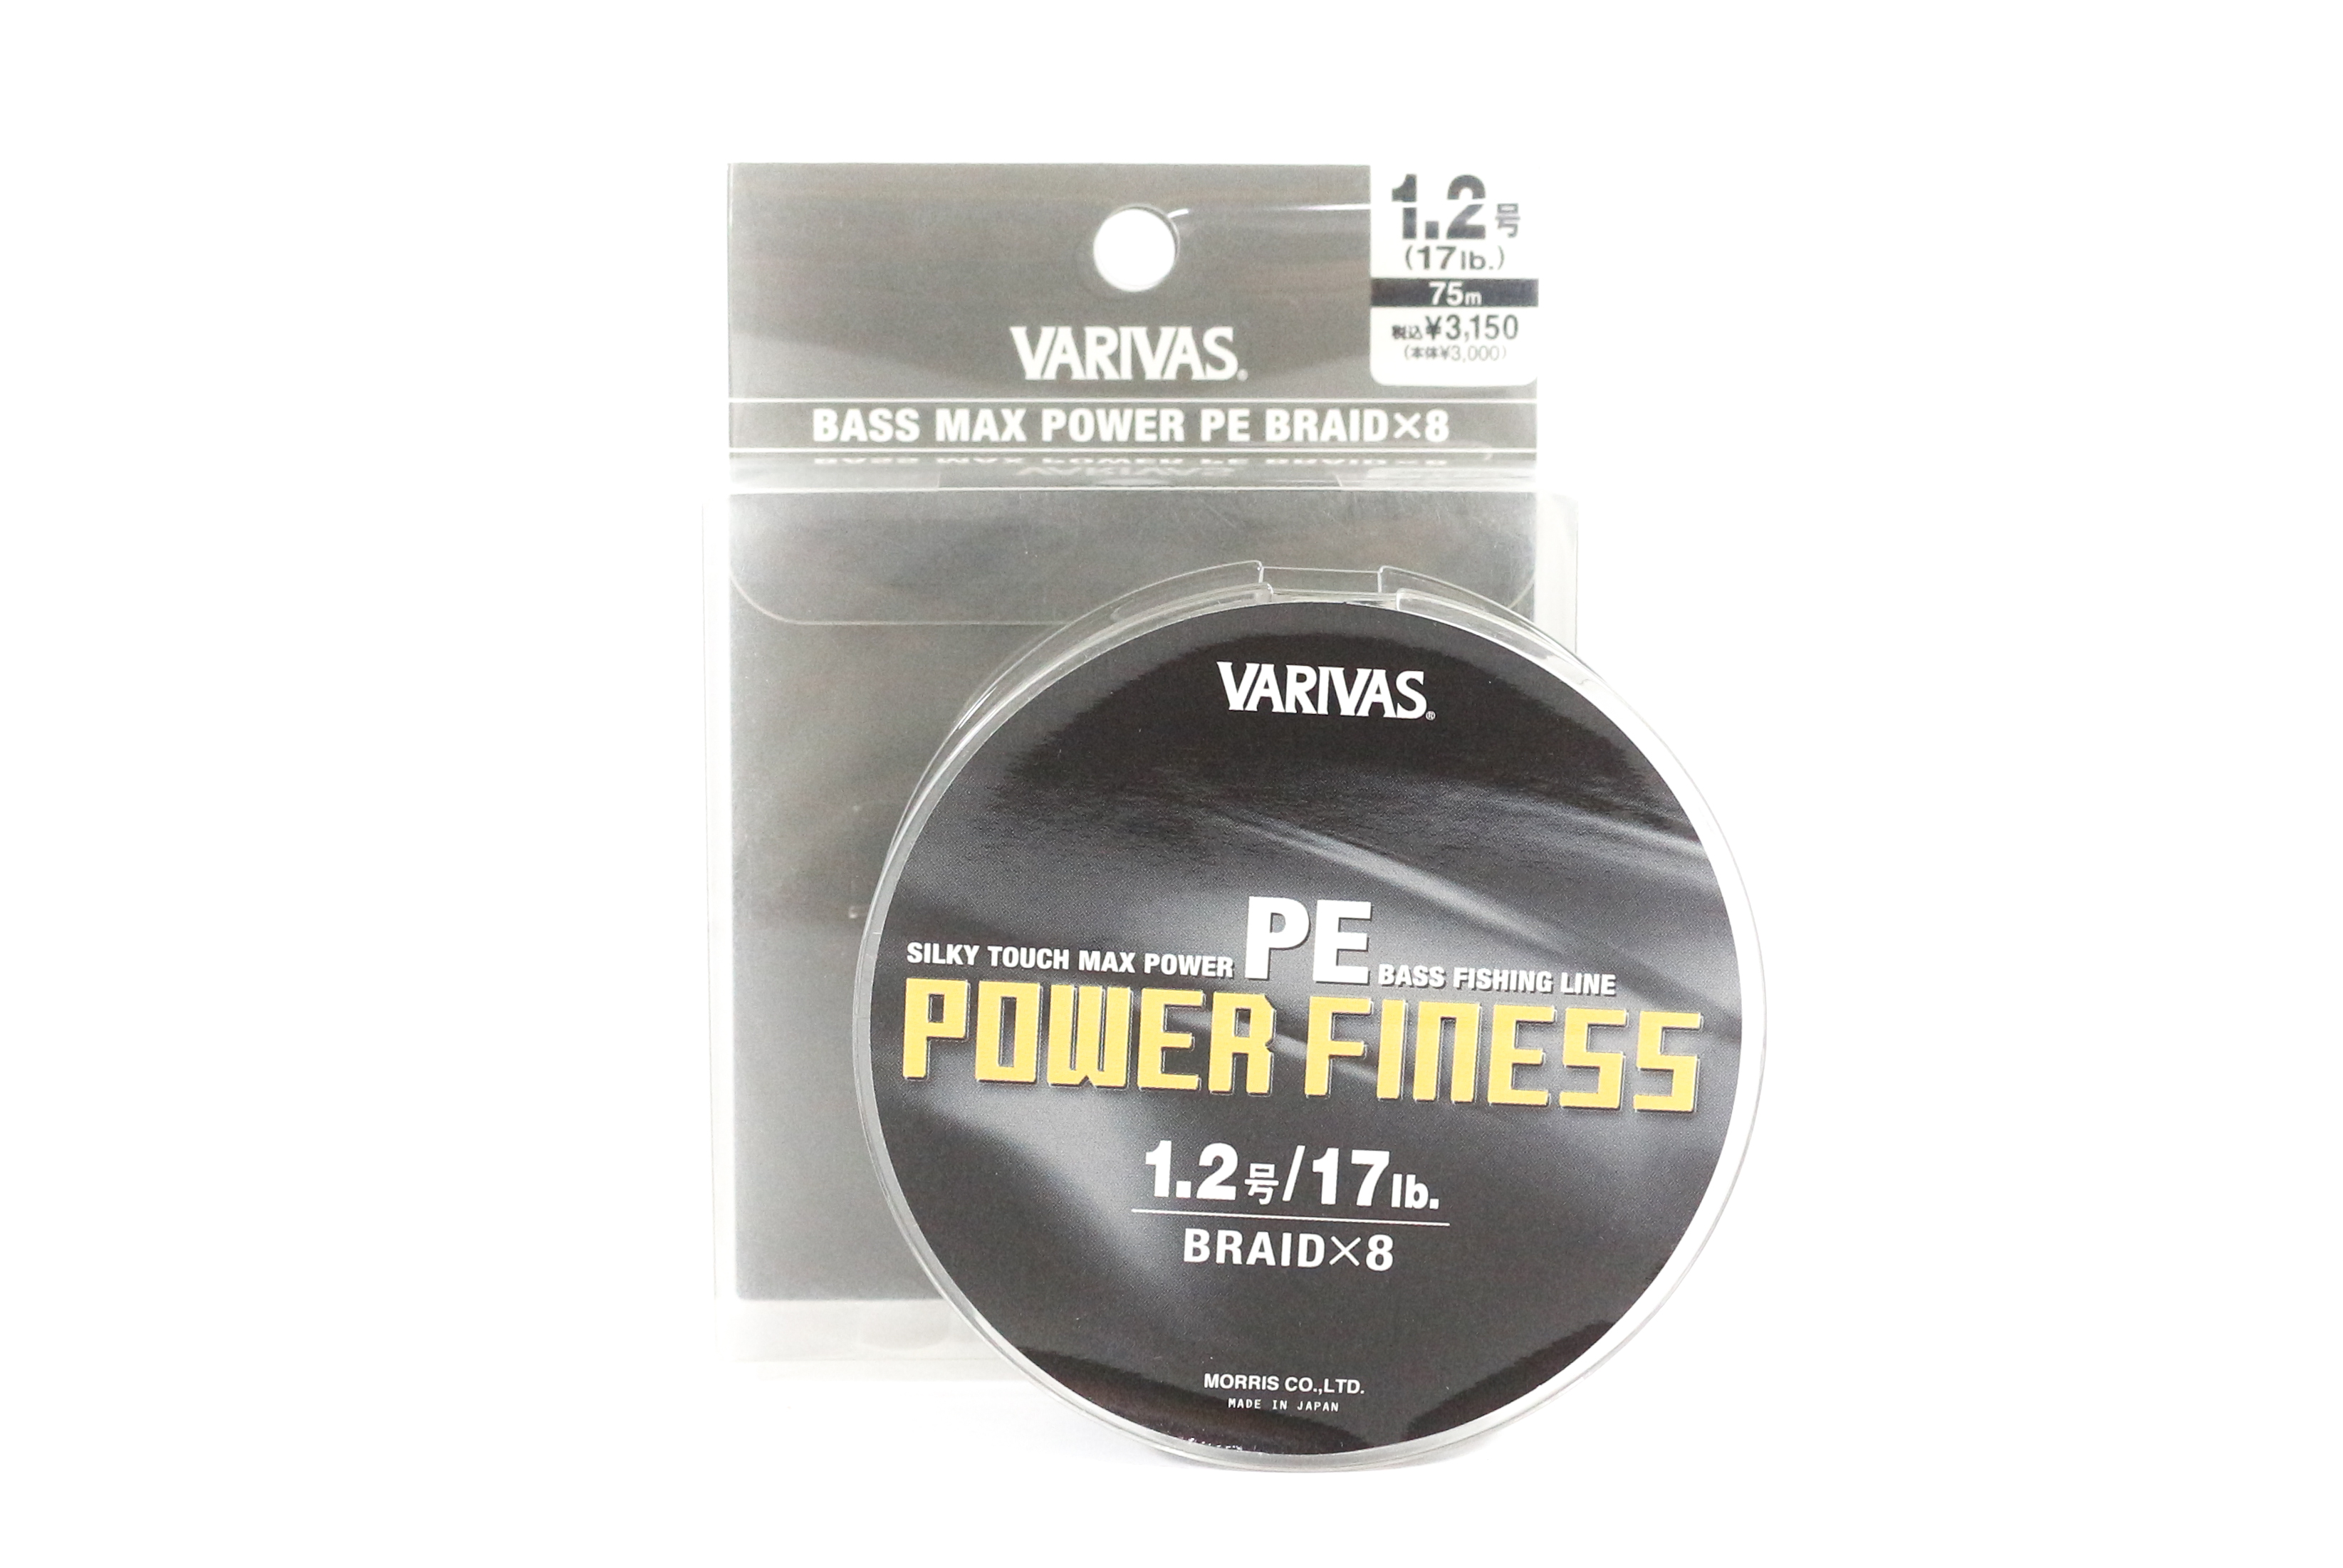 Sale Varivas P.E Line Power Finess Bass Fishing Line 75m P.E 1.2 17lb (8357)